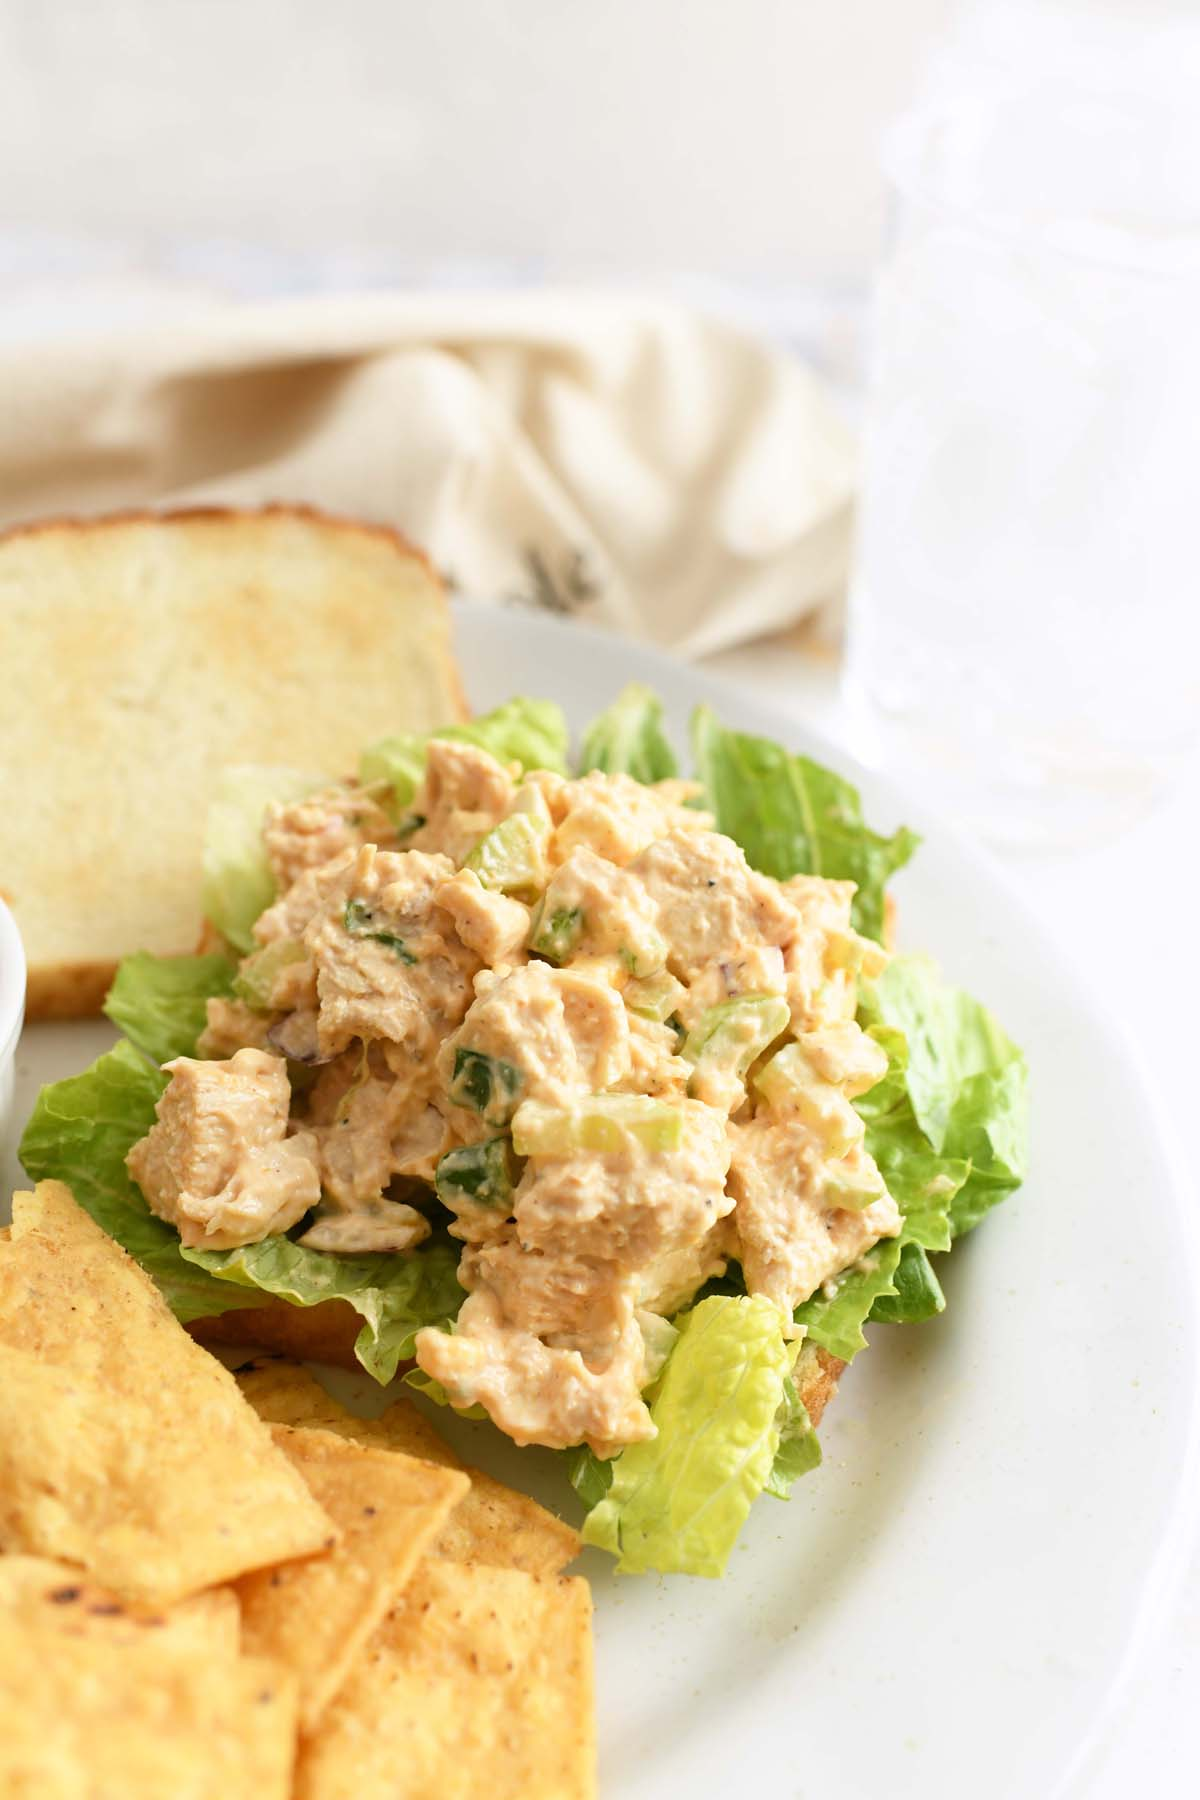 Buffalo Chicken Salad Sandwich. A toasted sandwich has chicken salad on it with lettuce. There are corn chips on the plate as well.